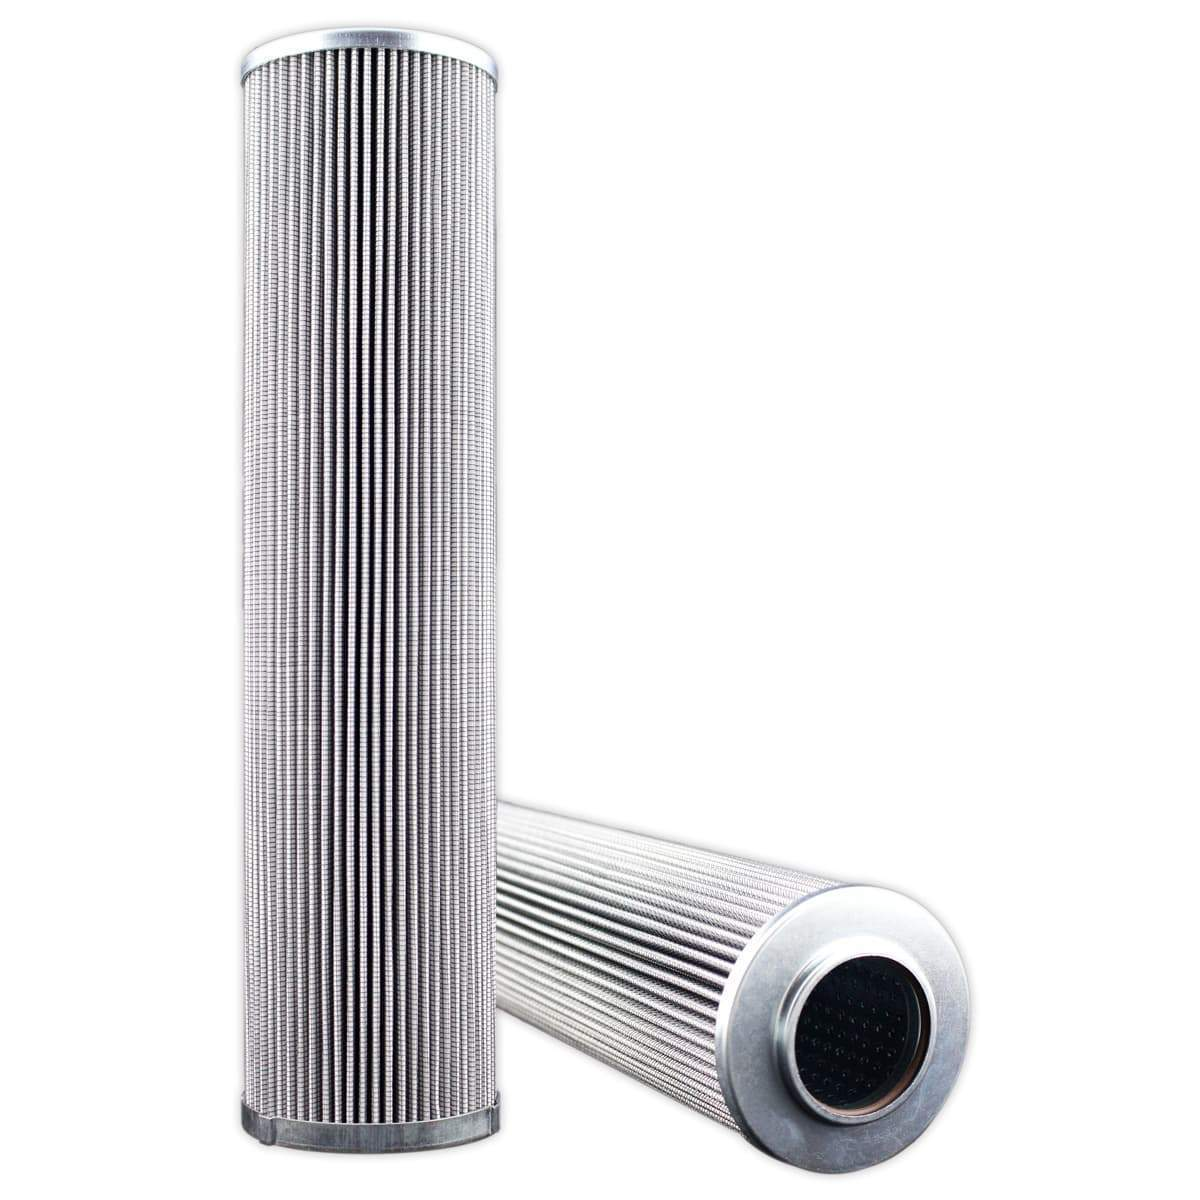 CASE 1976934C5 Replacement Filter by Mission Filter